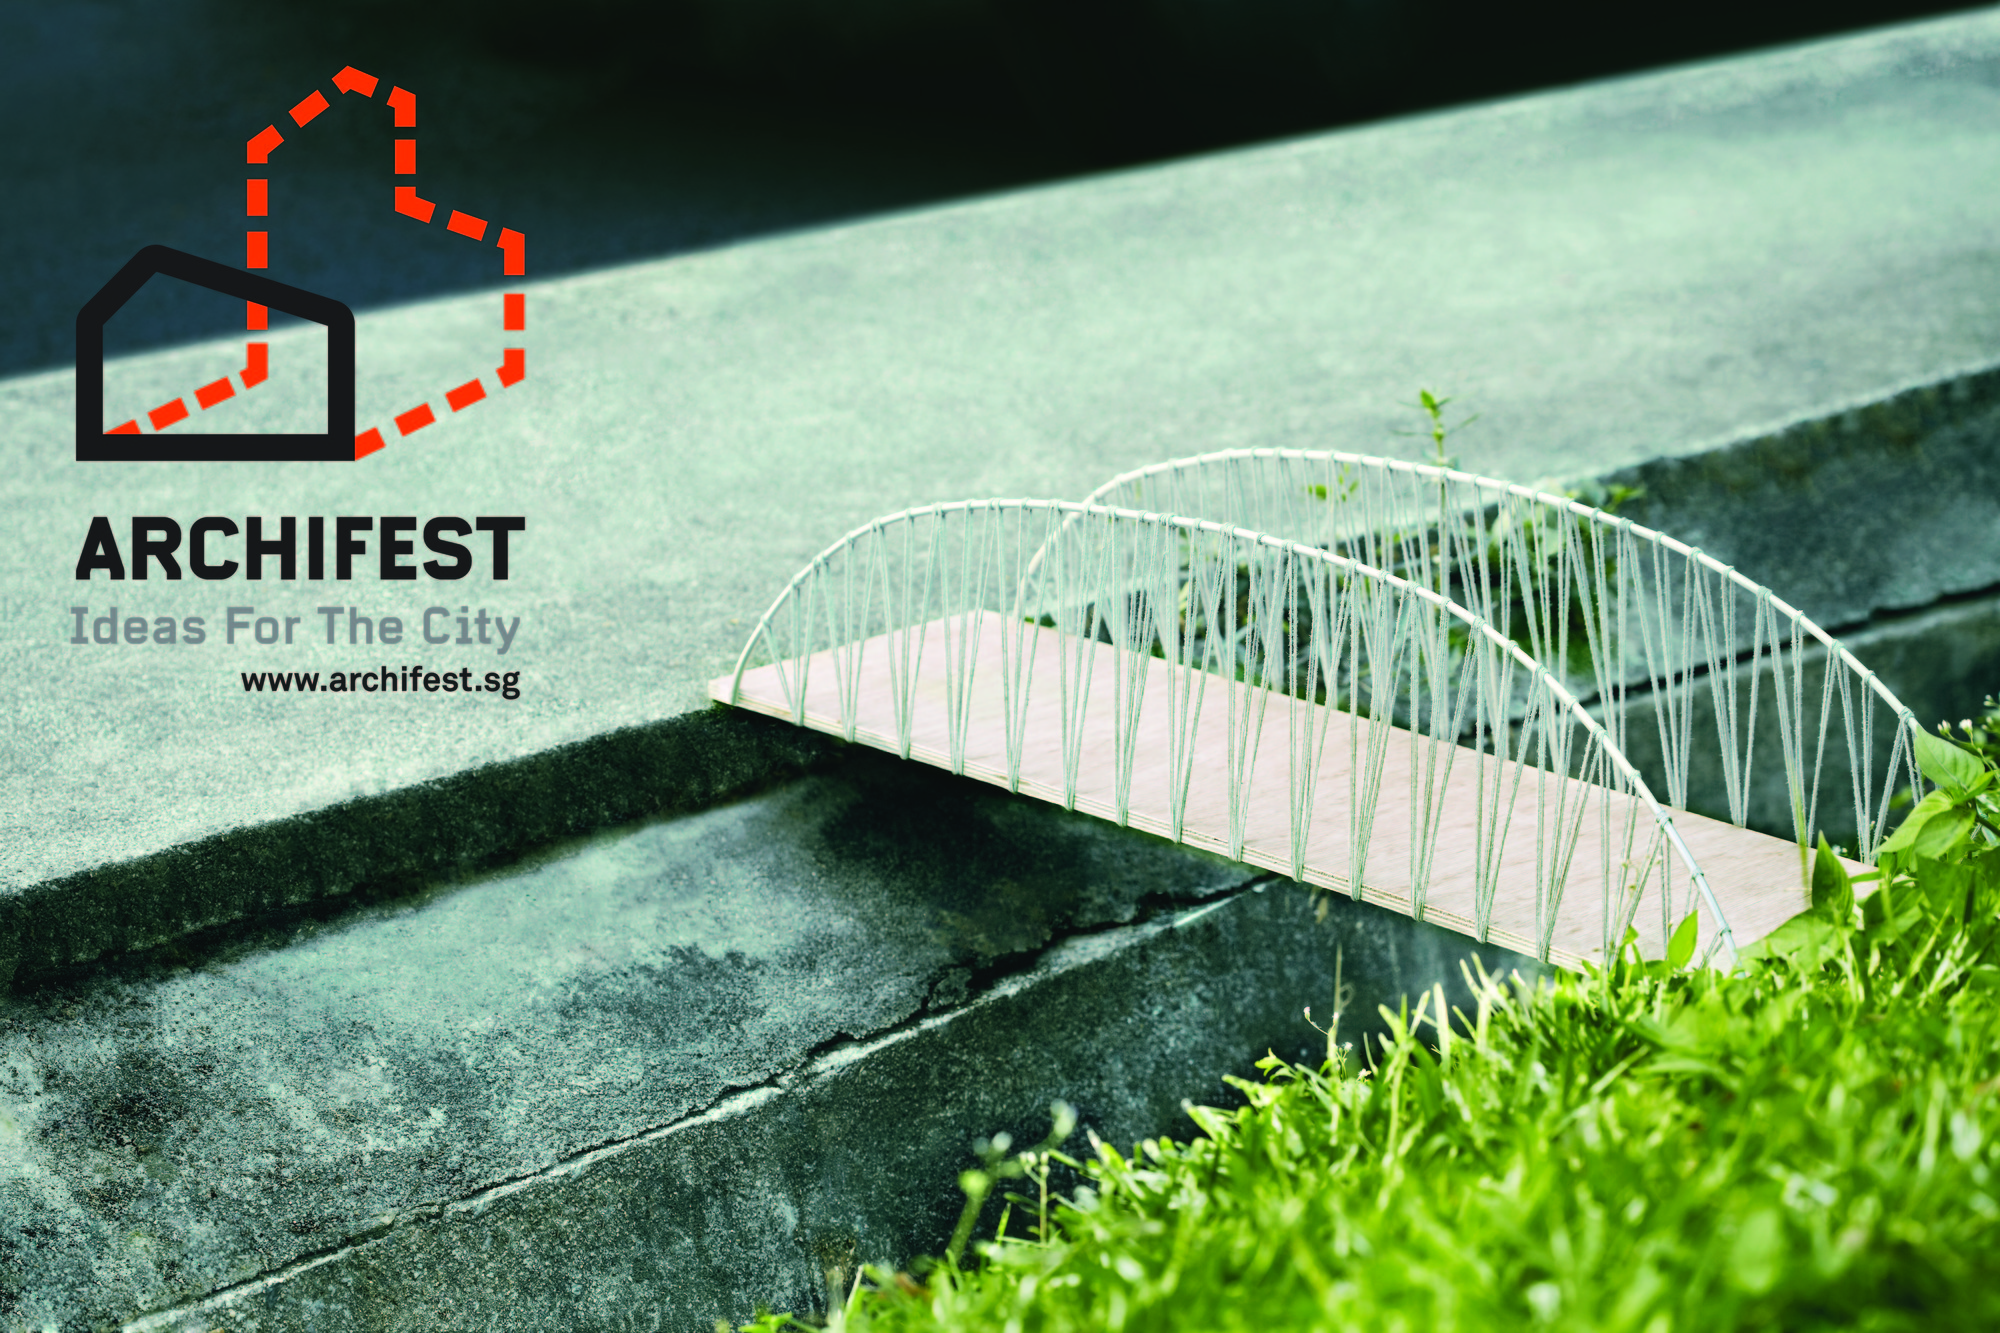 Archifest 2013: A Festival of Ideas for the City, Courtesy of Singapore Institute of Architects